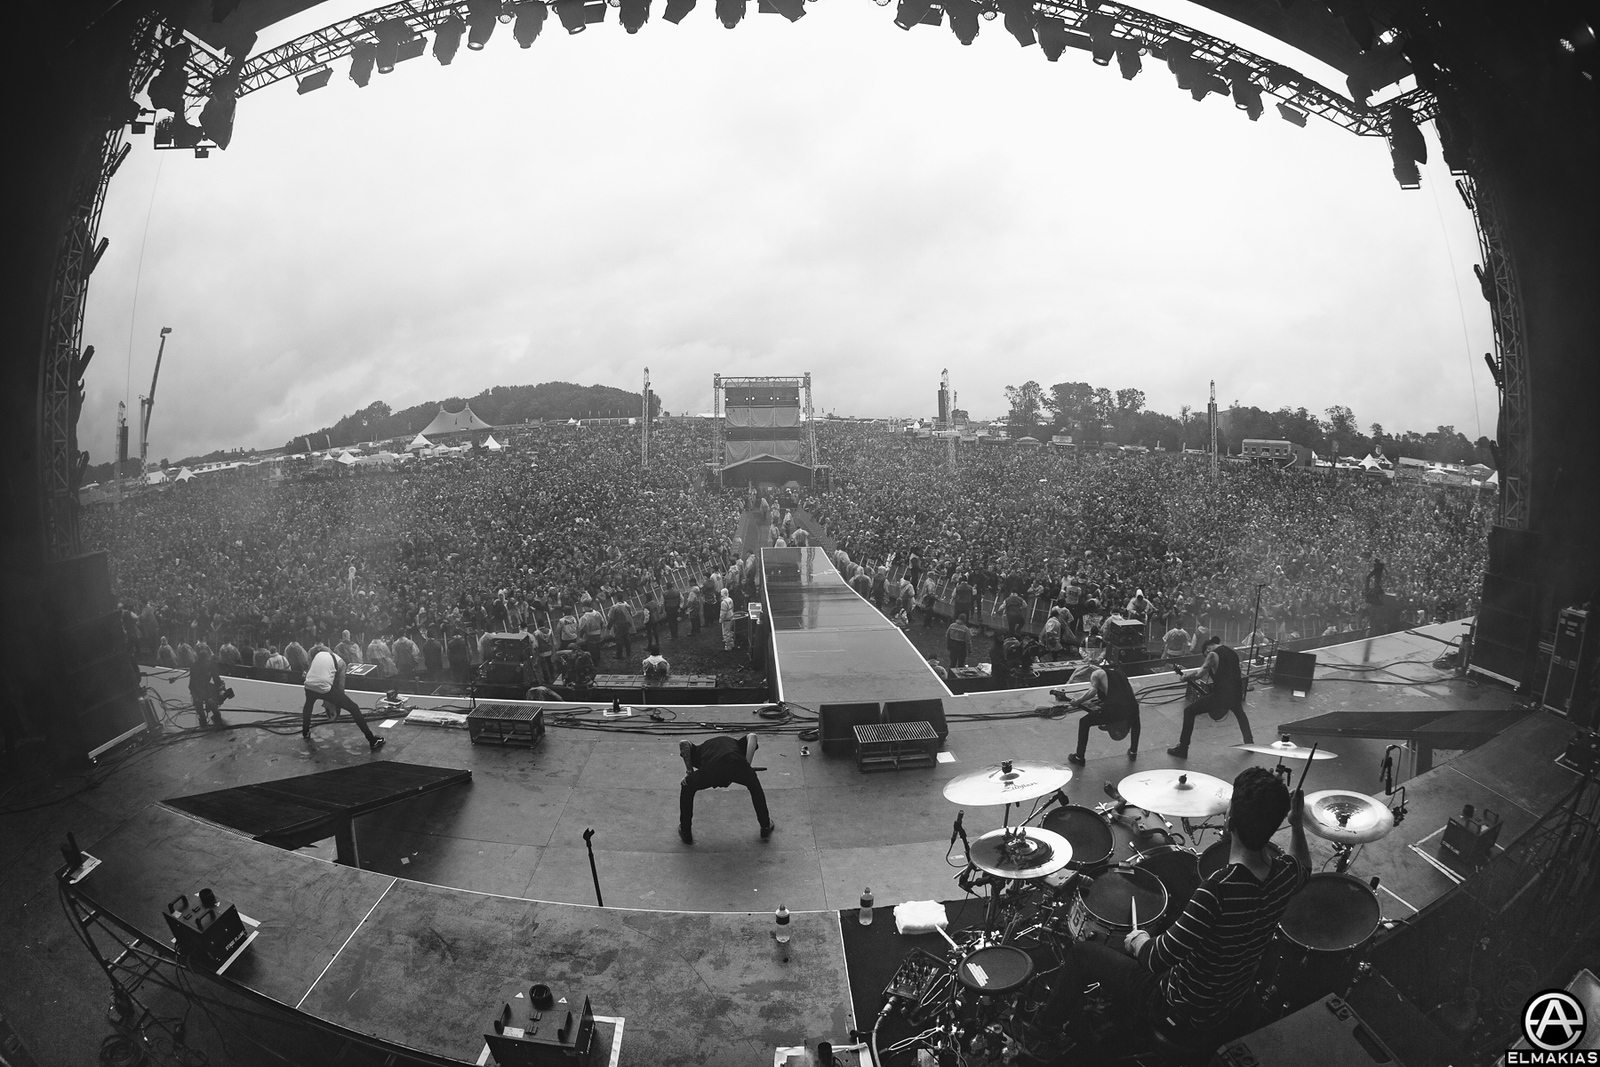 A Day To Remember live at Download Festival in Leicestershire, England - European Festivals